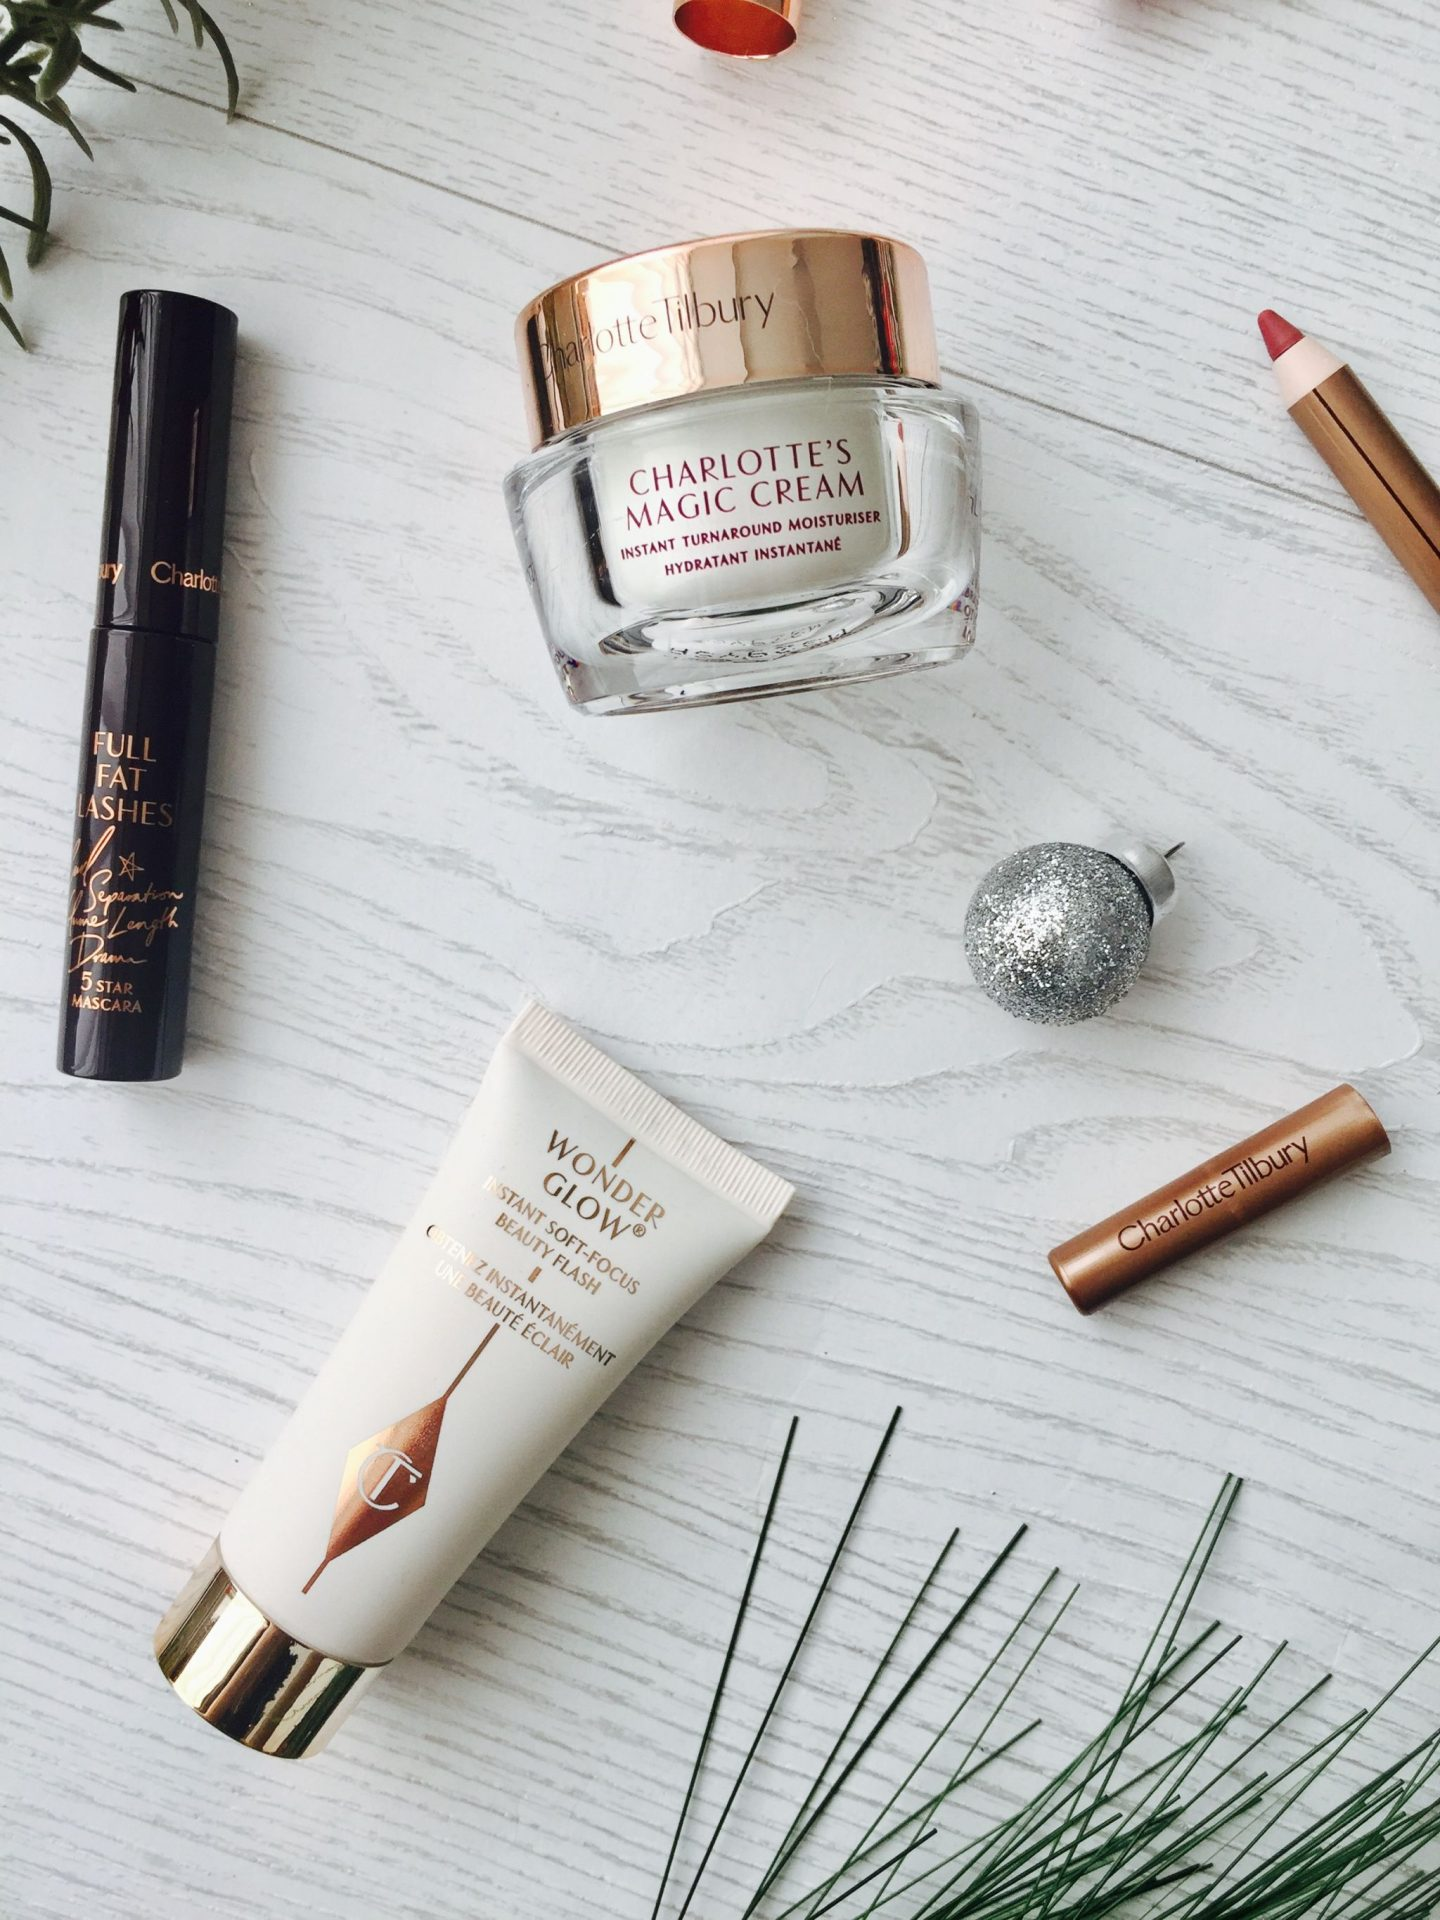 Charlotte Tilbury Beauty Icons Pillow Talk Scent of a dream wonderglow Penelope pink magic Cream full fat lashes